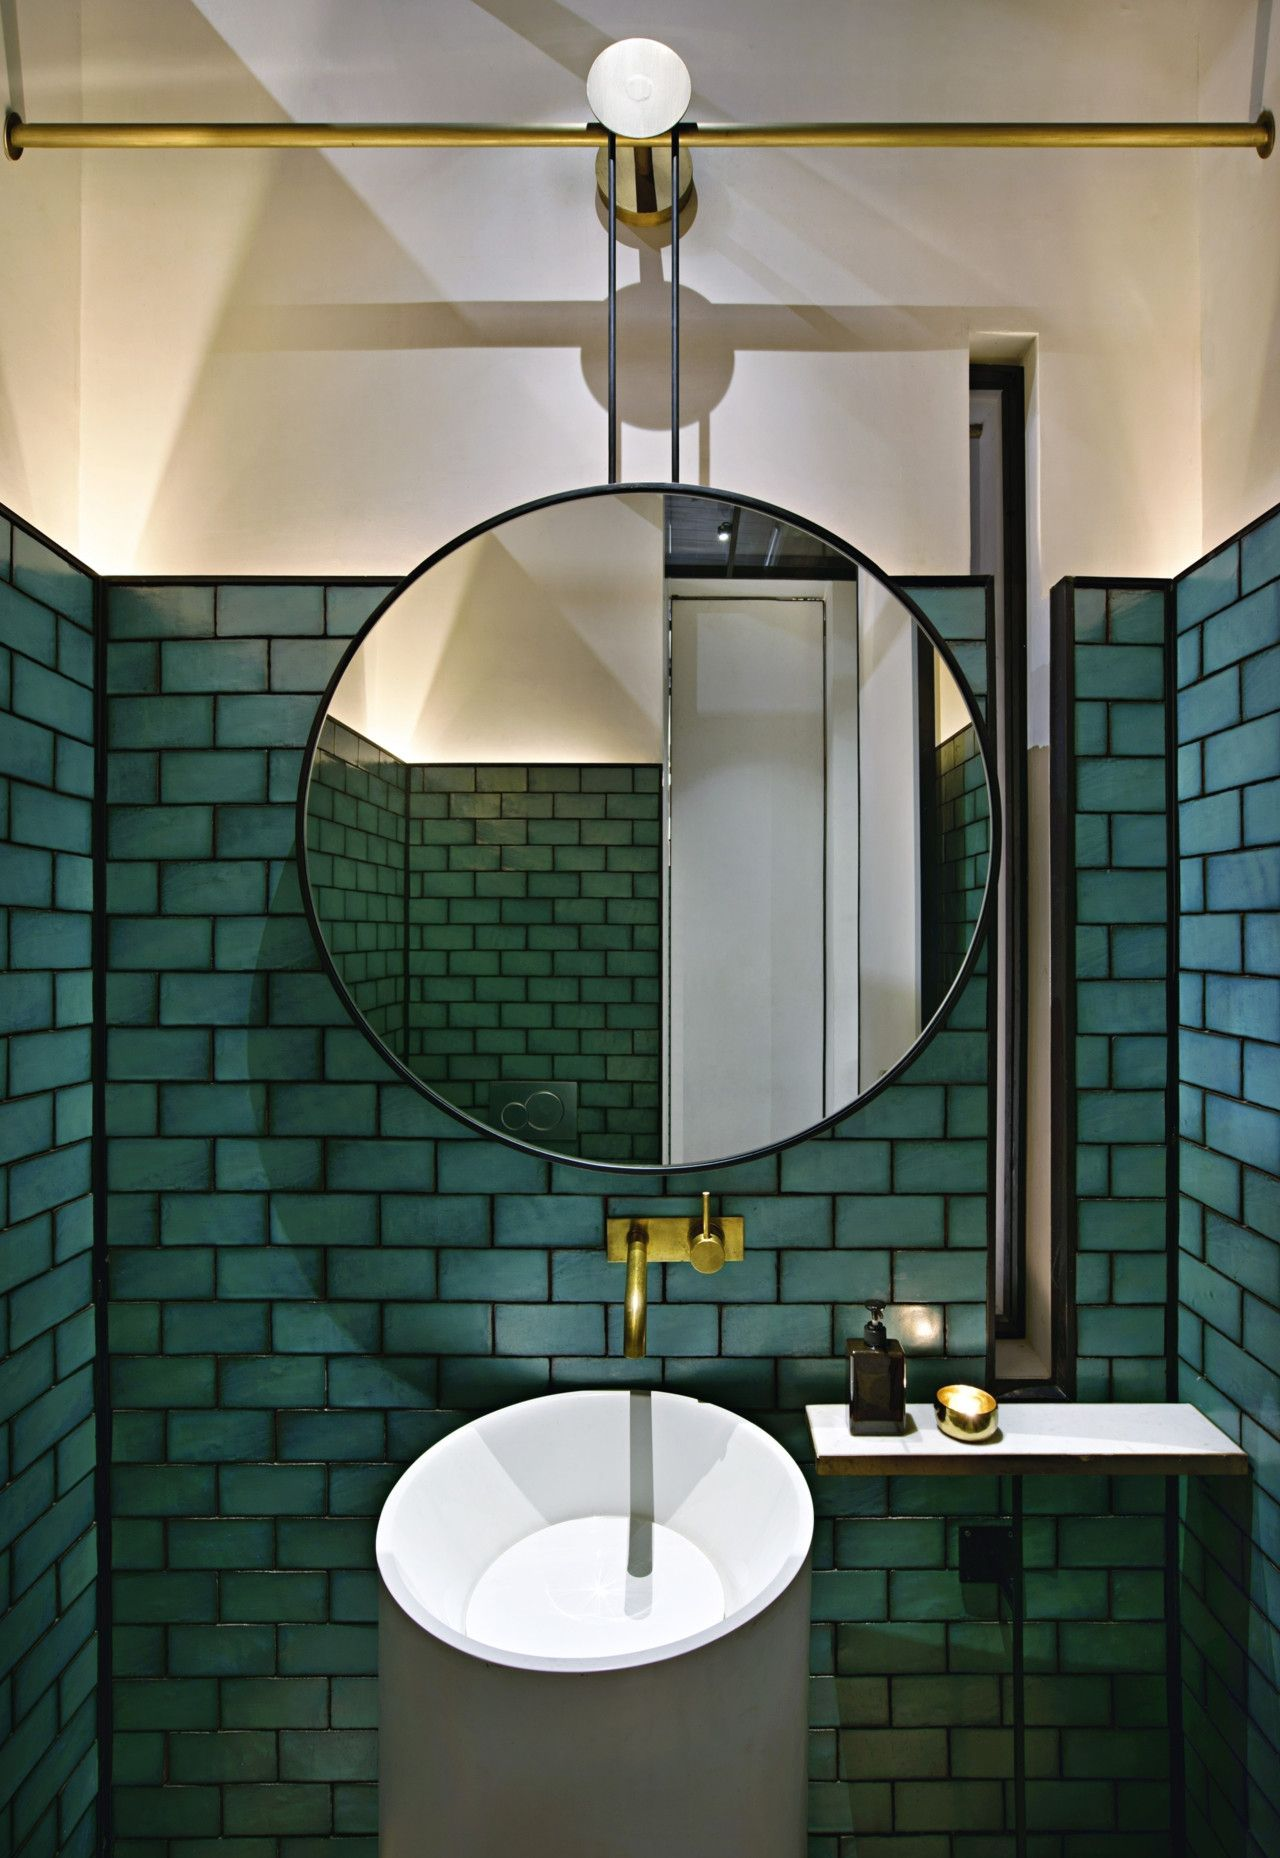 Gia restaurant and whisky bar in jakarta by hecker guthrie for Bathroom design restaurant